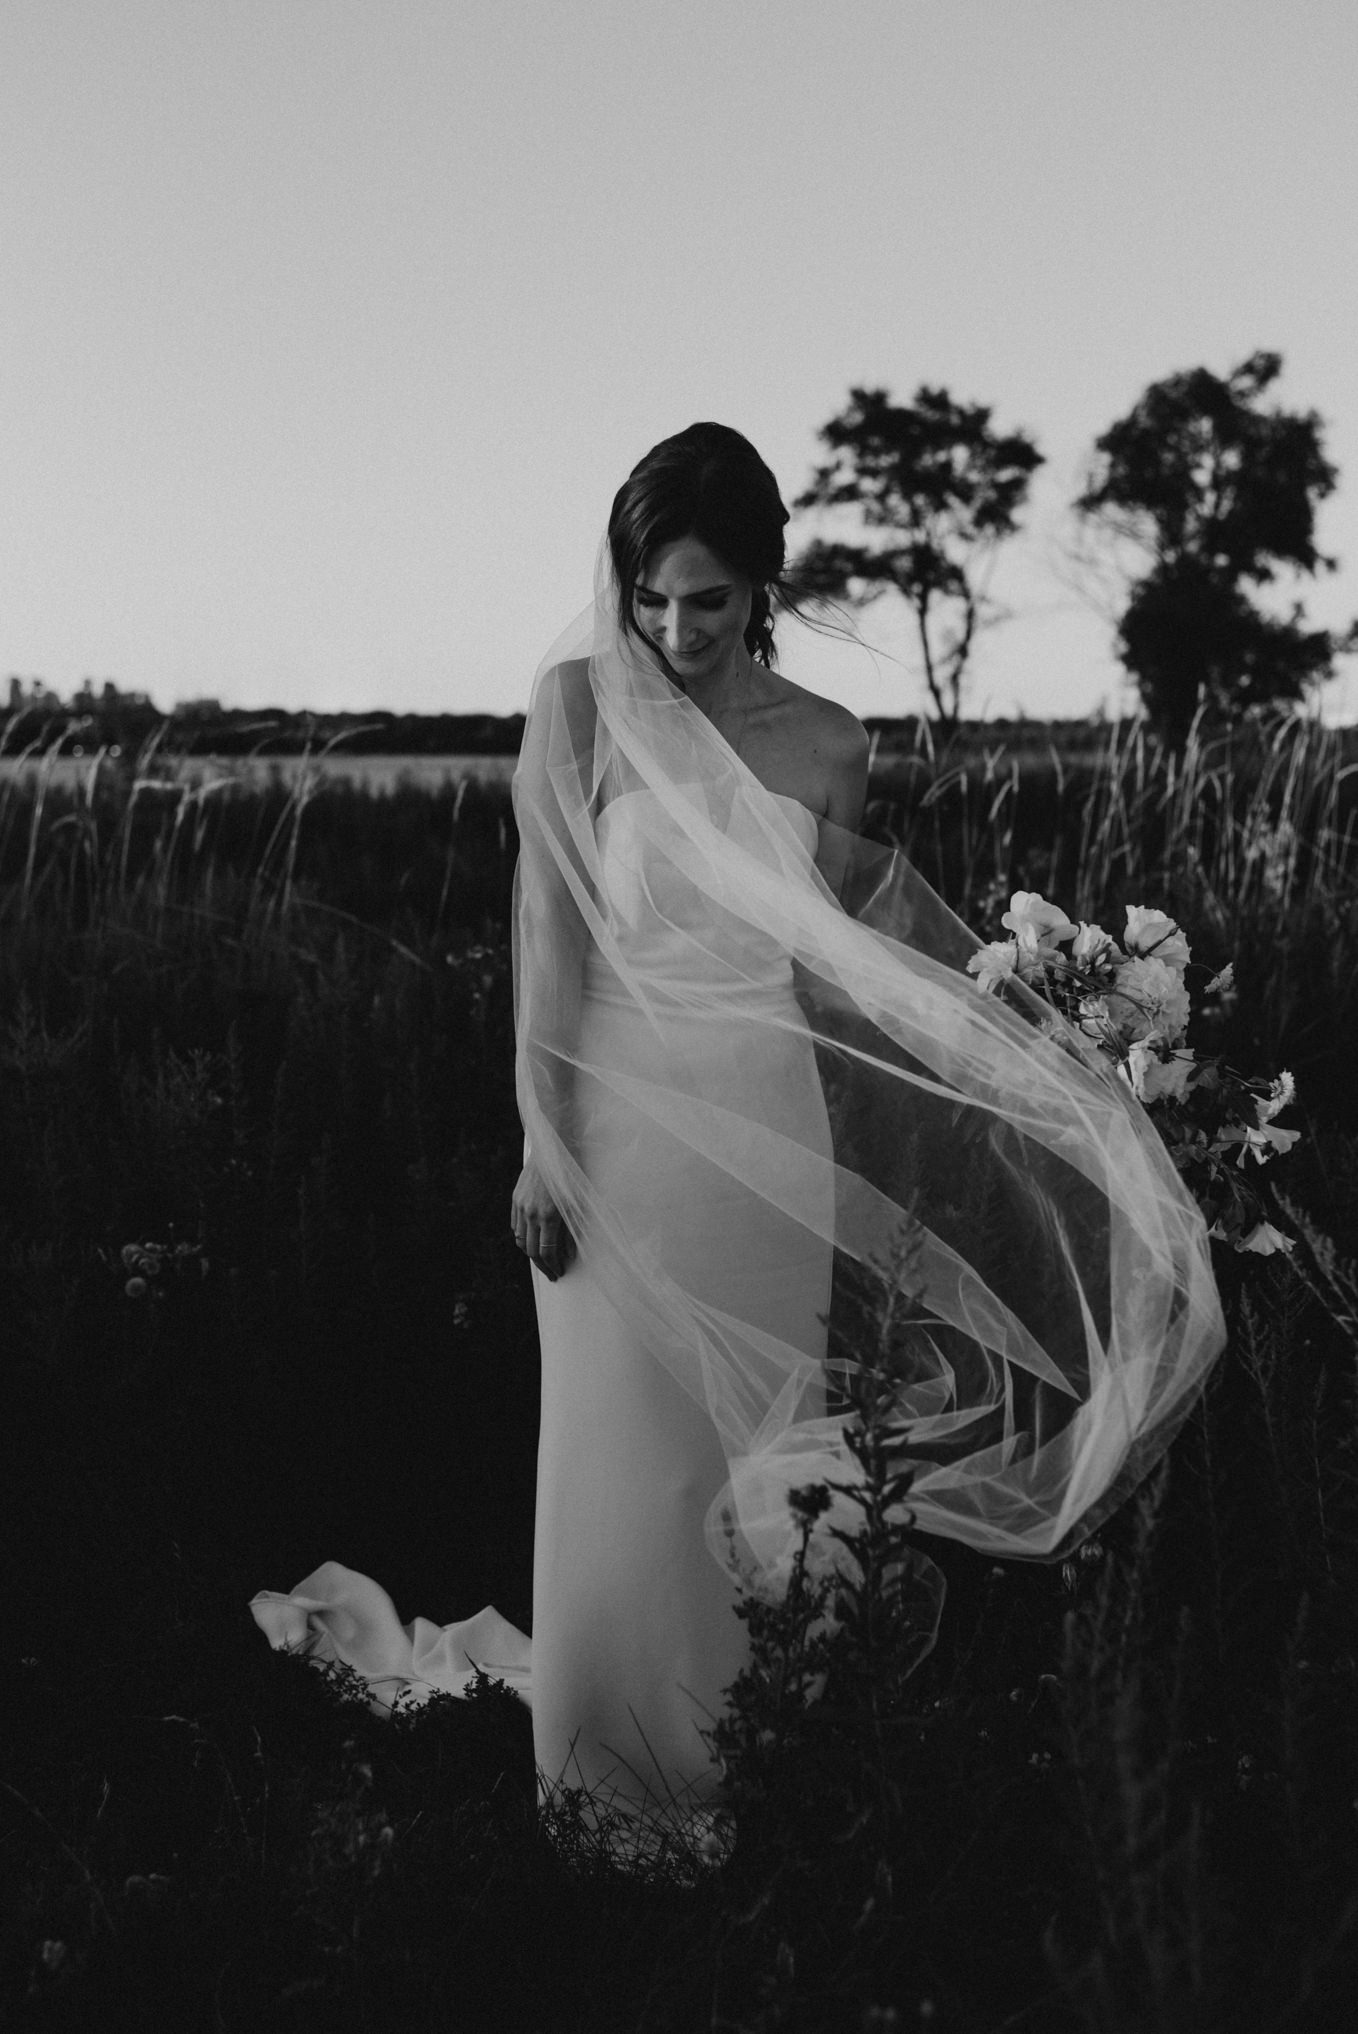 Bride with veil in wind at Humber Bay